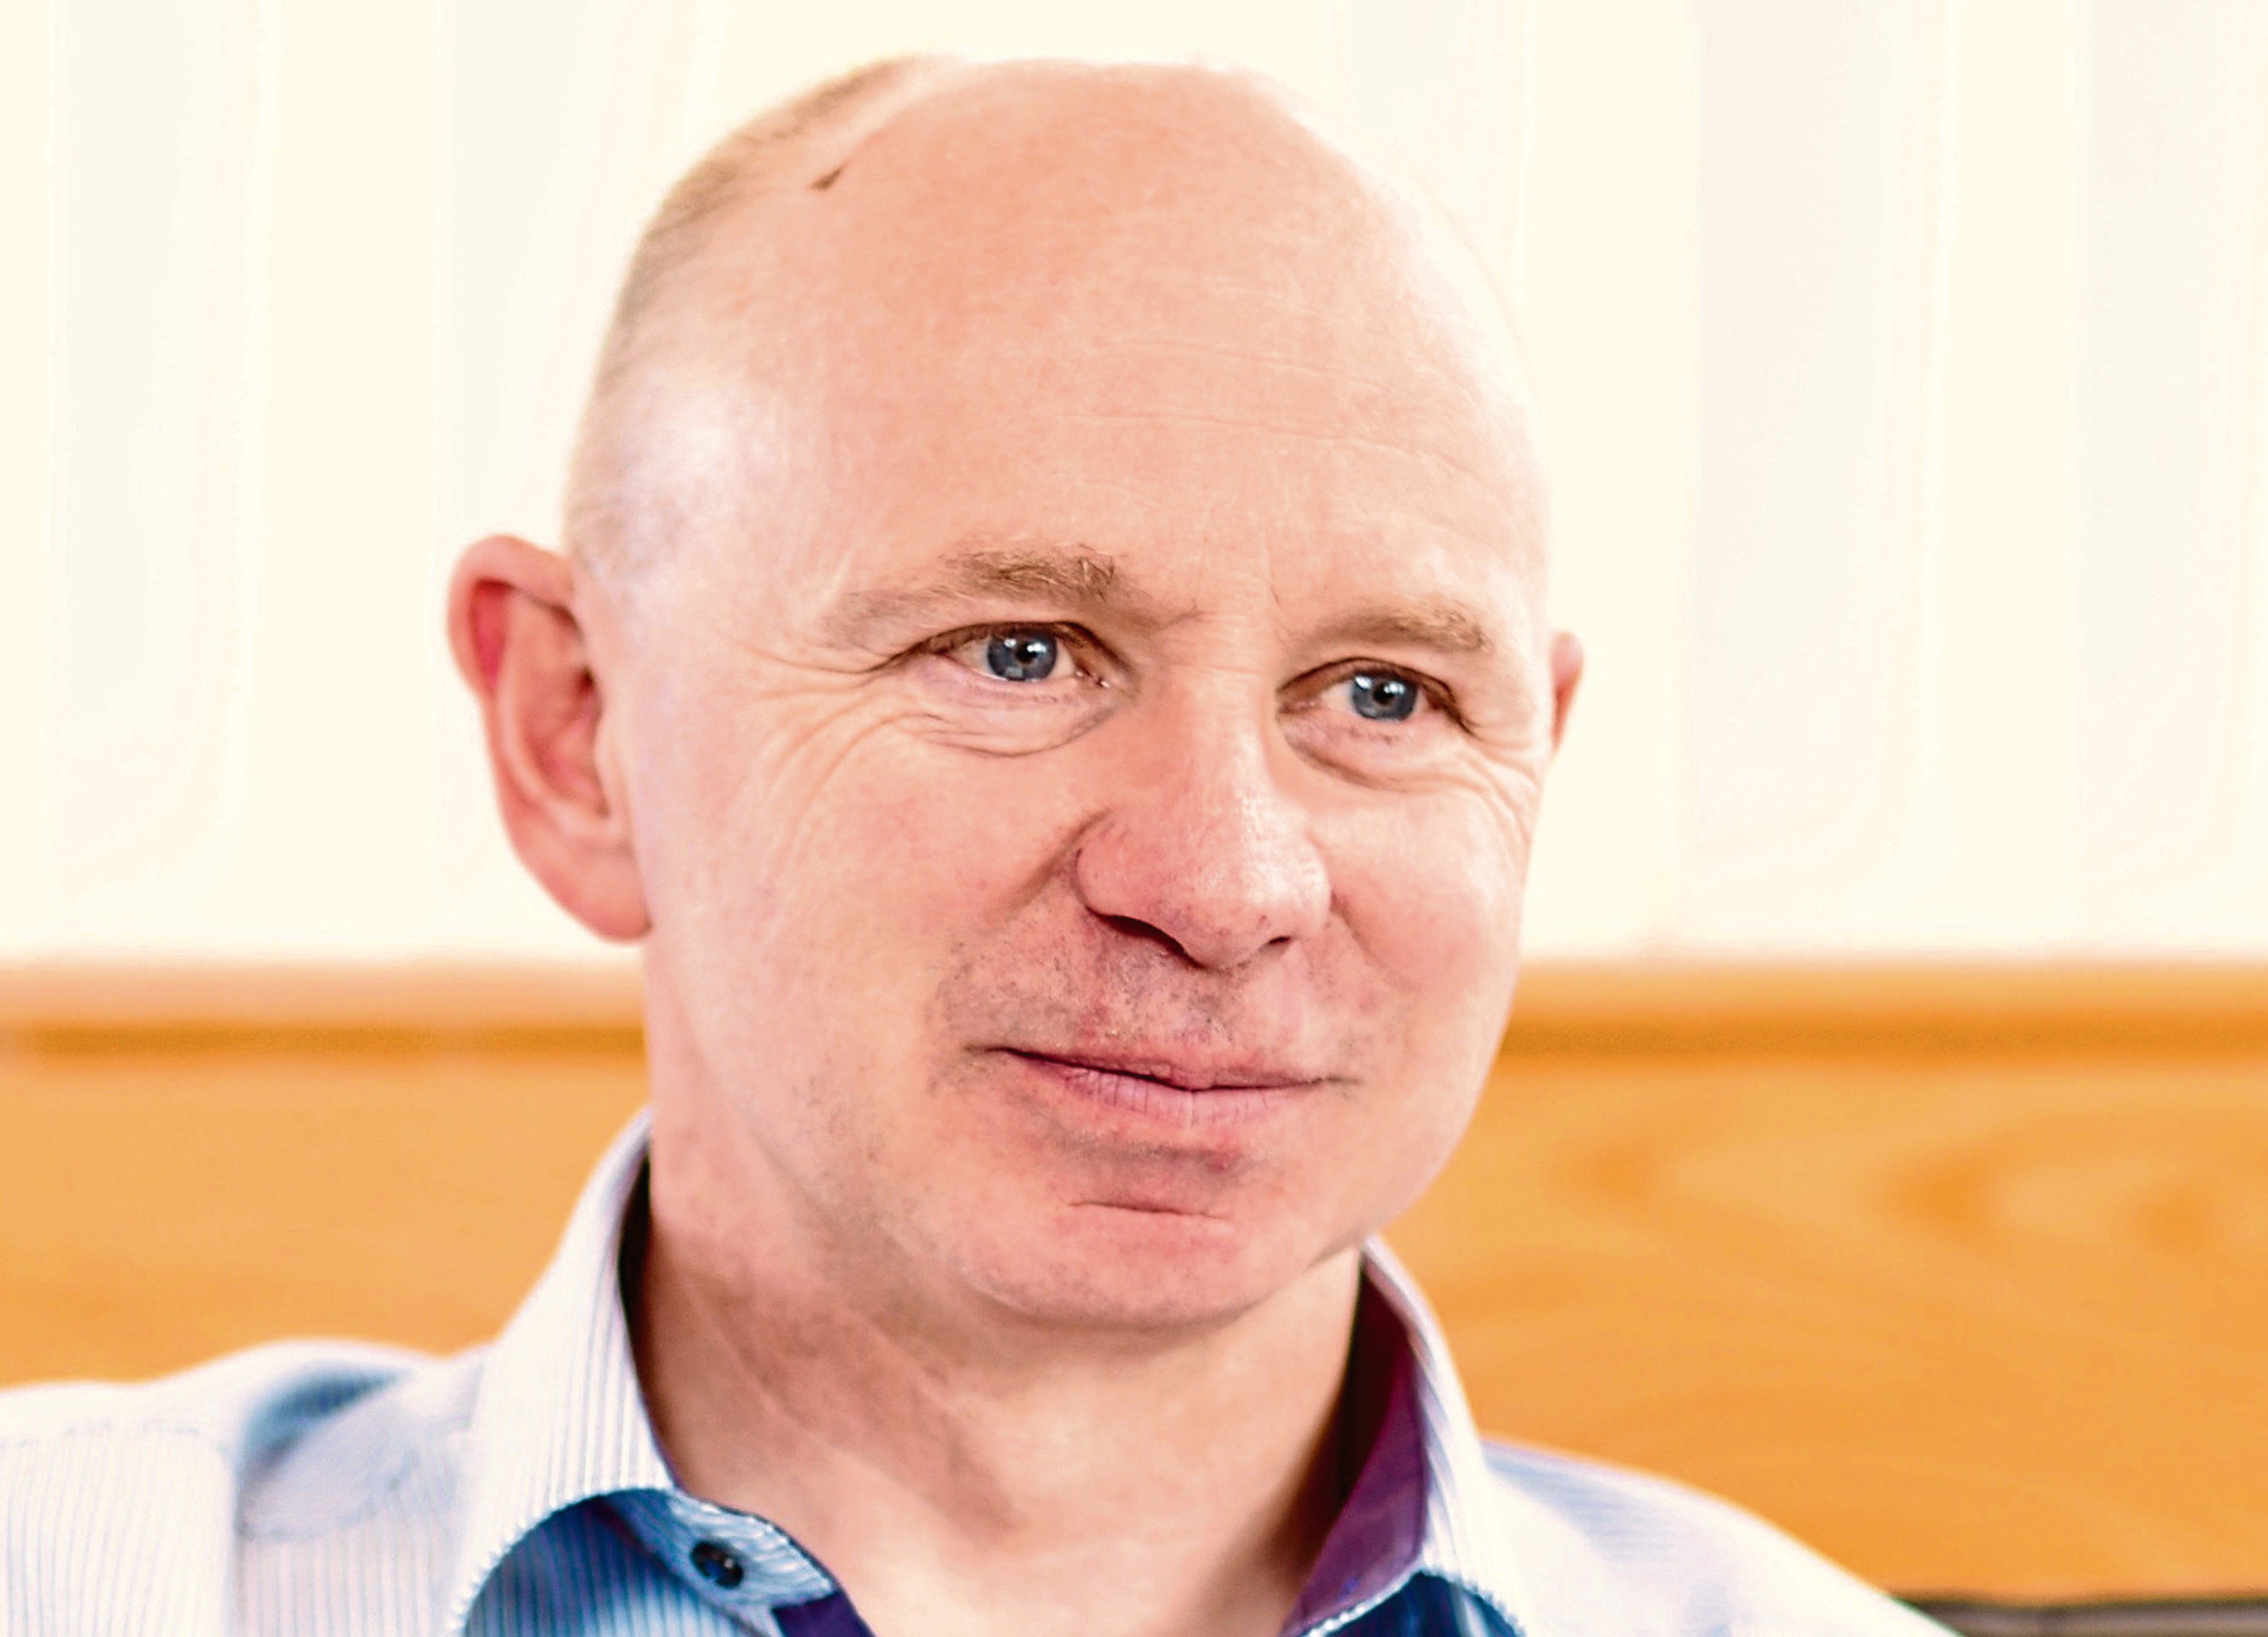 Ronald Millar, CEO of PaySend